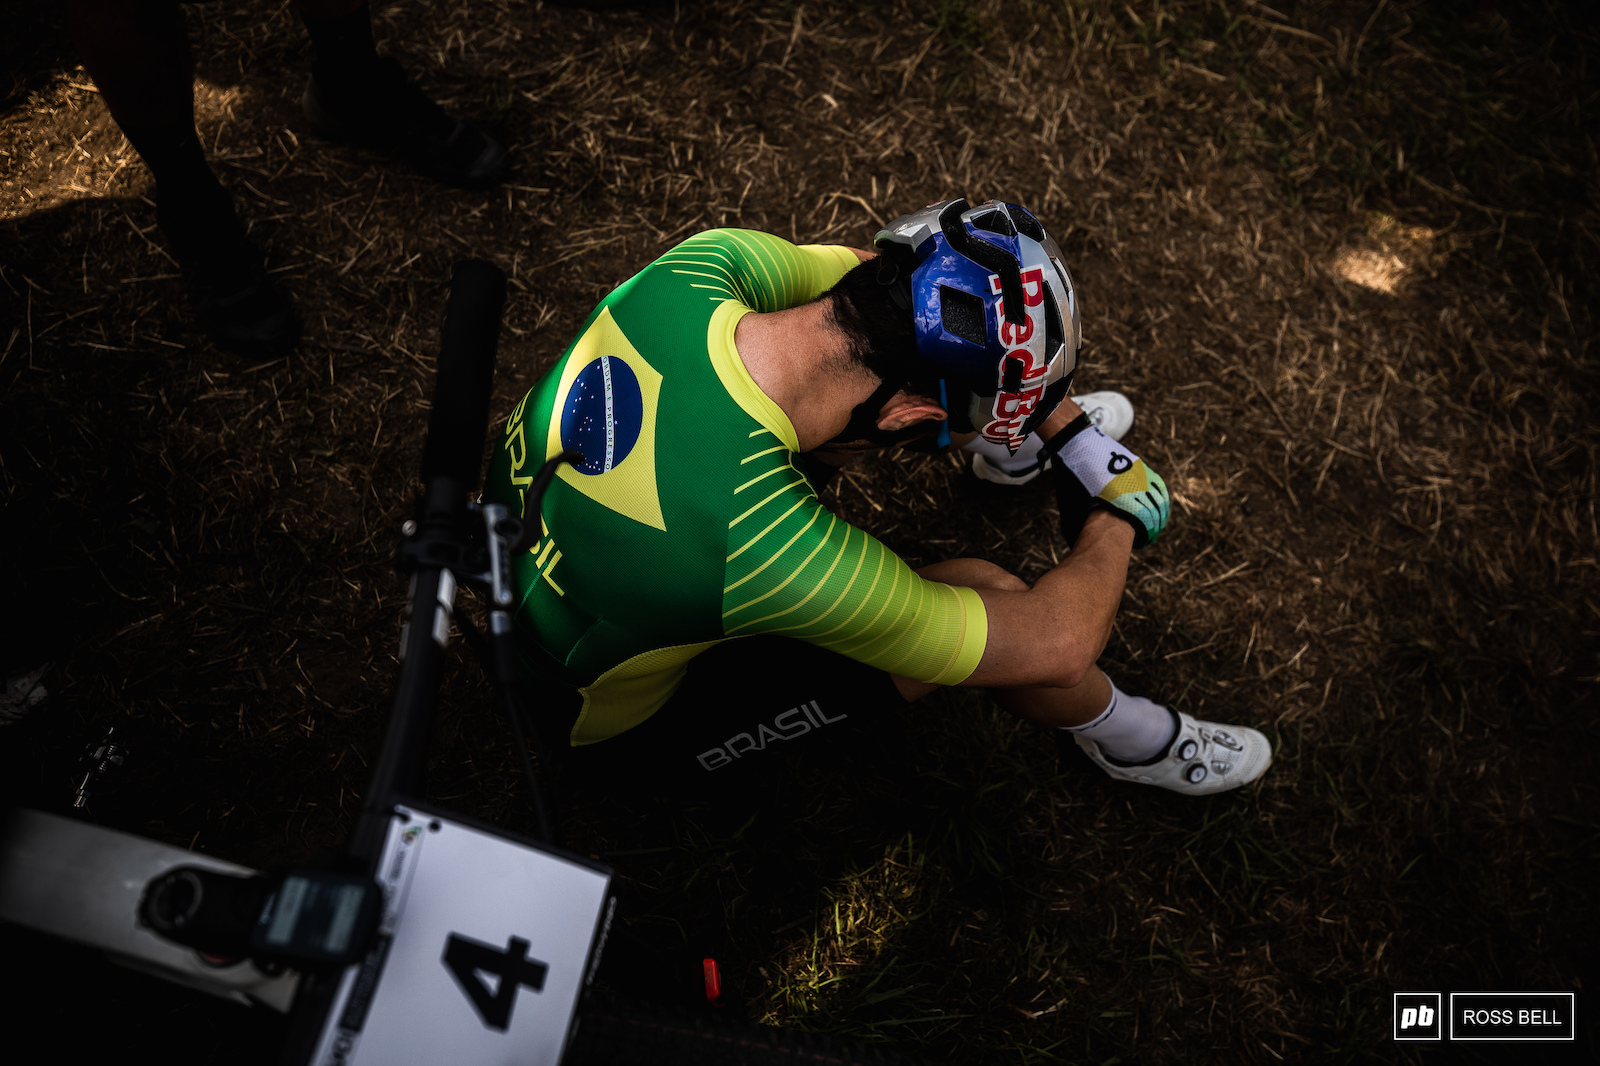 A quiet moment of contemplation for Henrique Avancini before the start of the race.